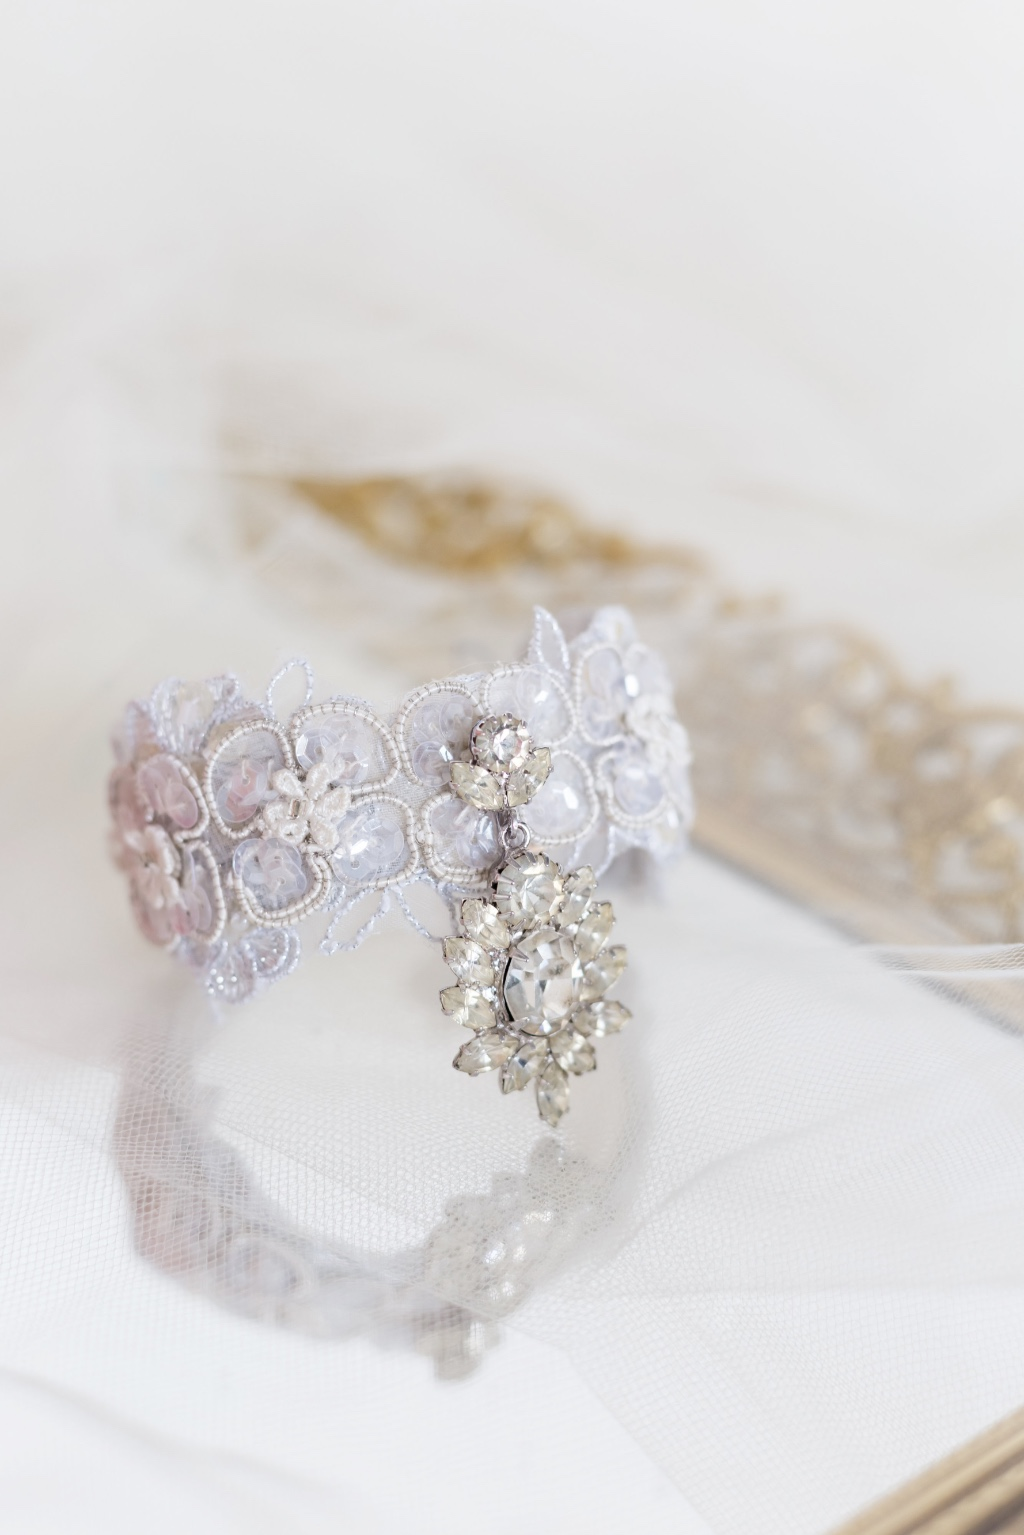 Bespoke bridal cuff beautiful designed with a gorgeous vintage jewel